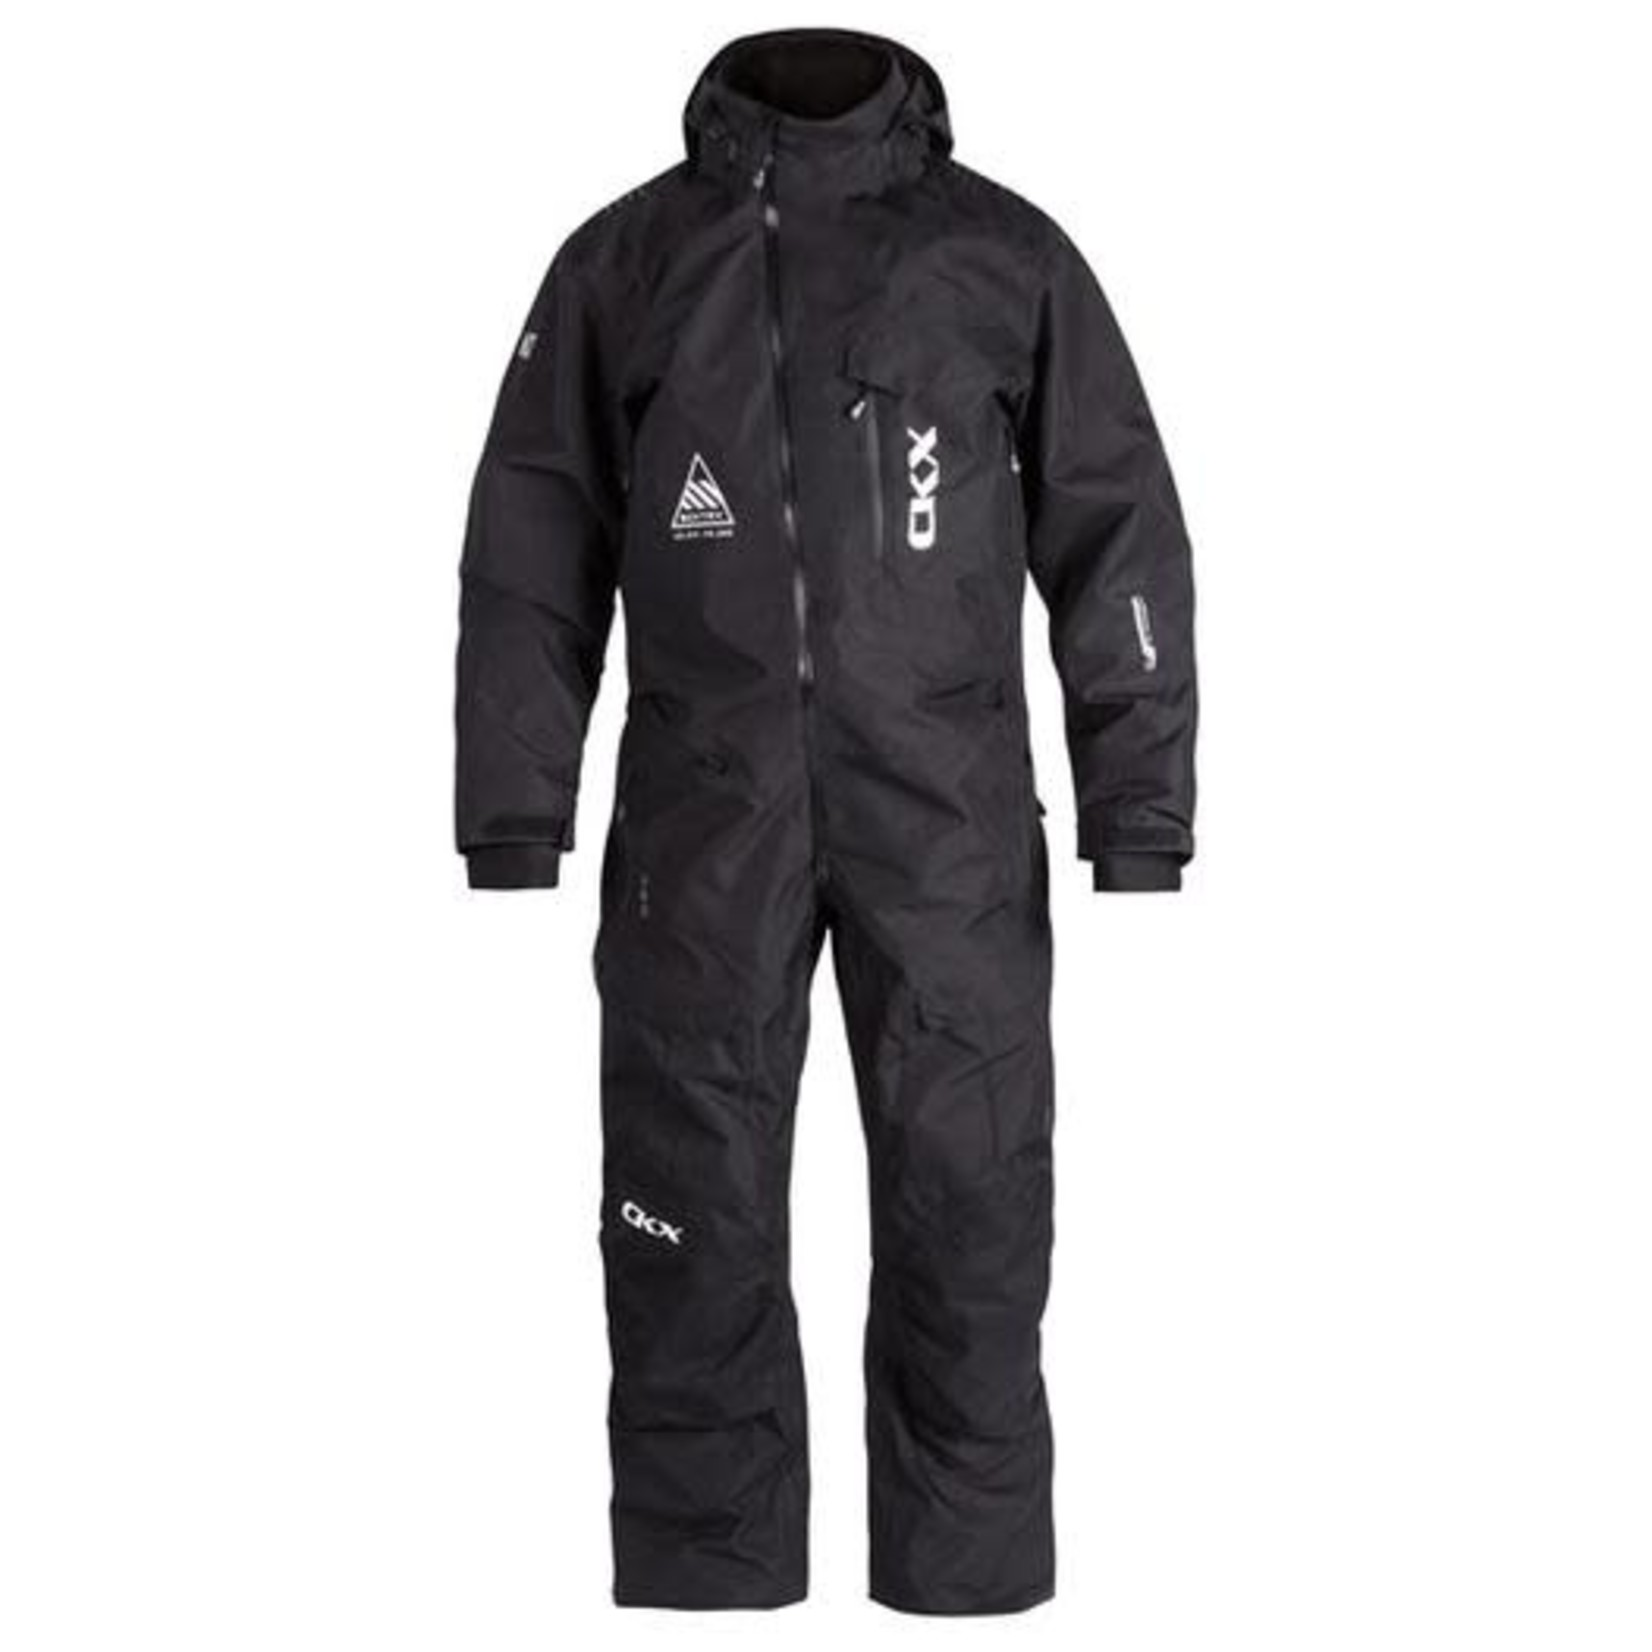 CKX 1-Piece Kit Elevation - Black - XL (non-insulated)